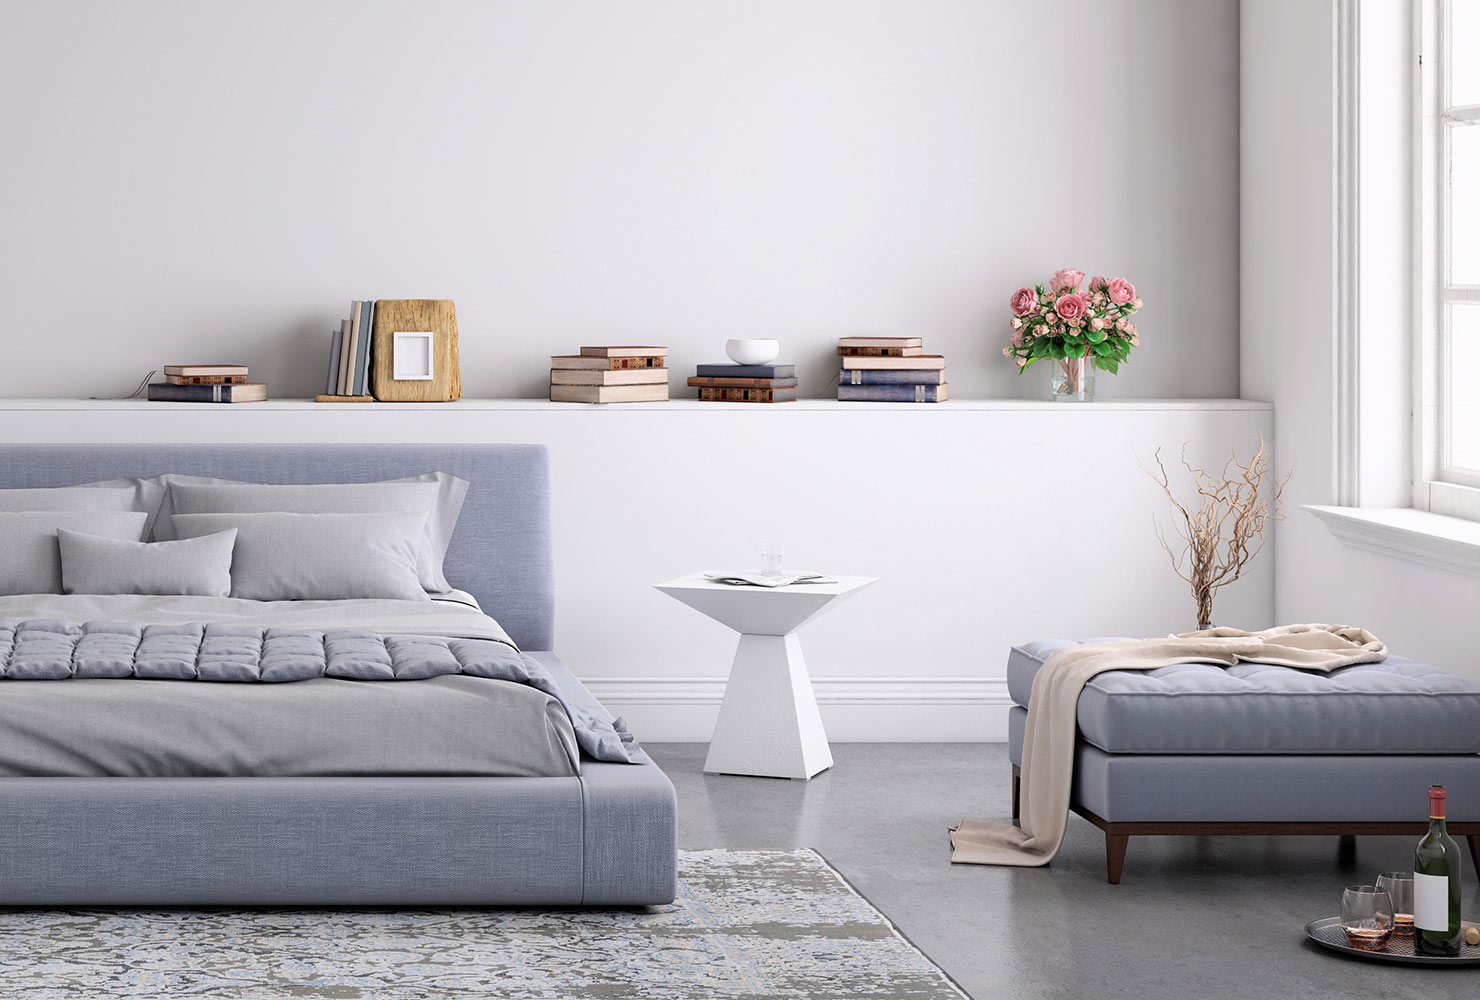 Lavender bedroom decor with ottoman.